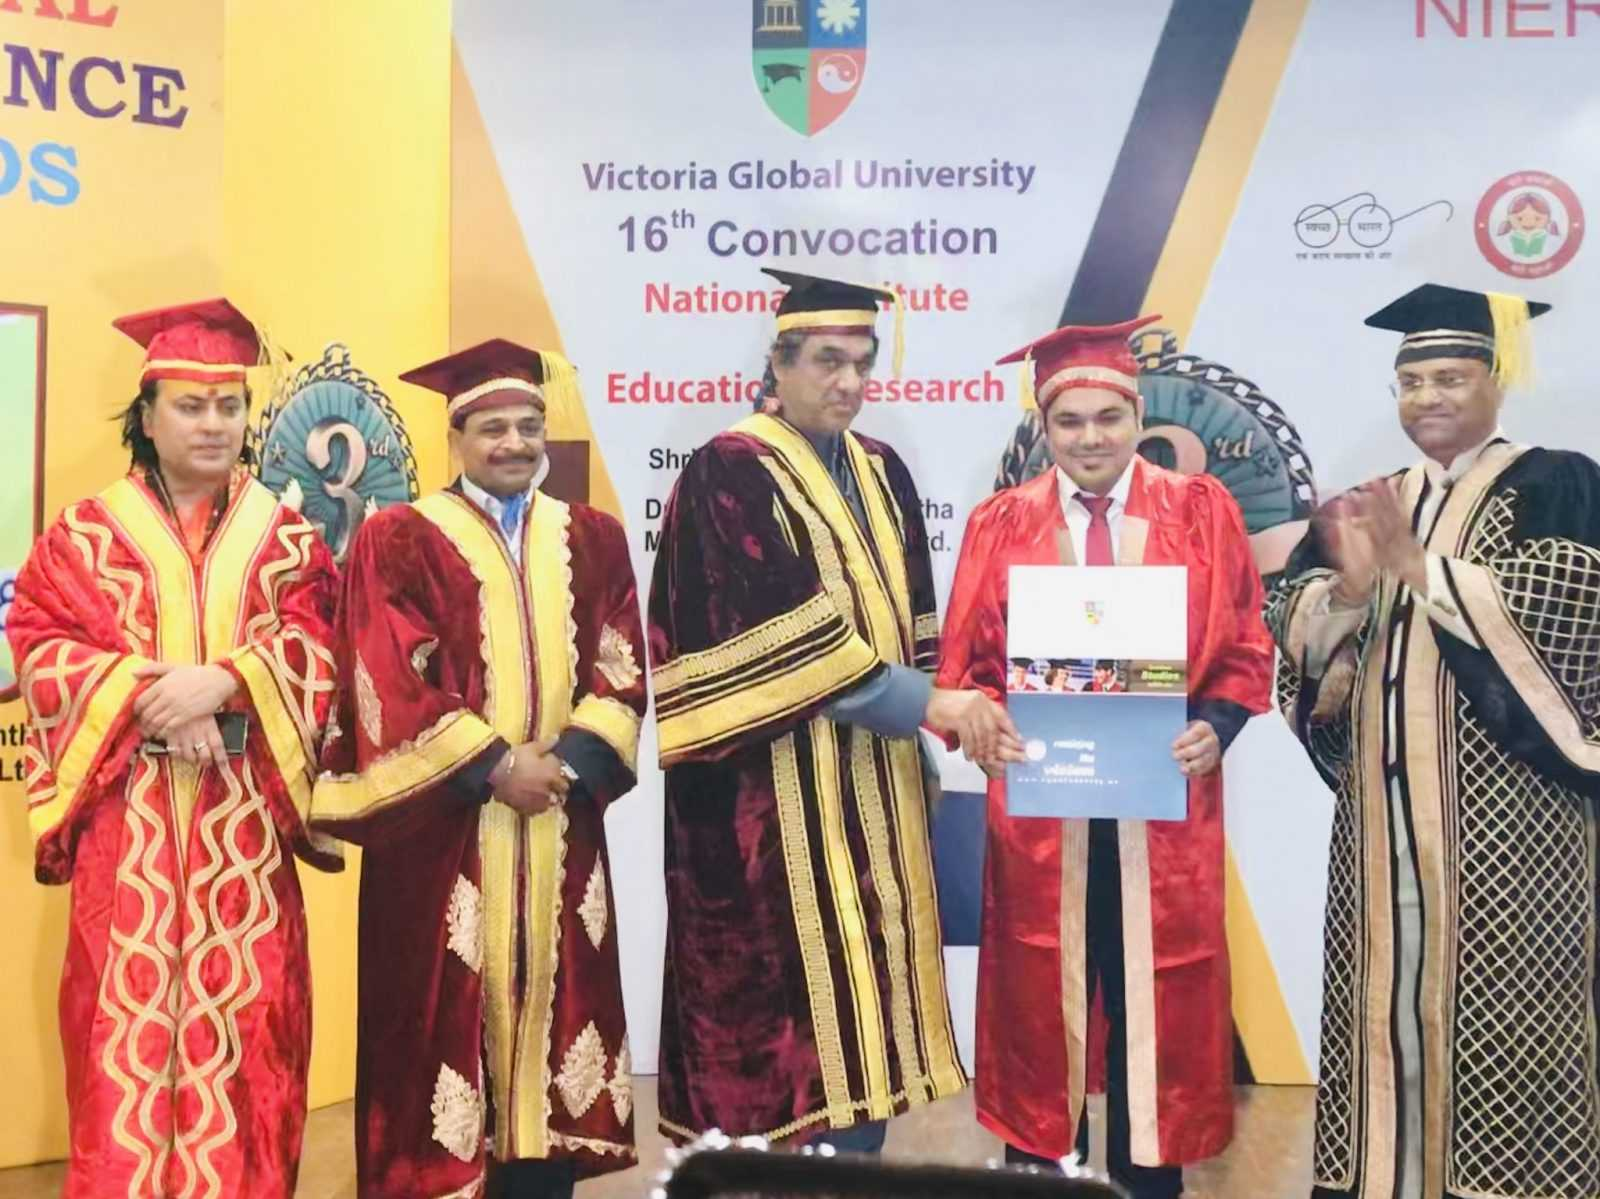 India's 1st Doctorate in Digital Marketing conferred to Mr. Raj Padhiyar by Victoria Global University, USA